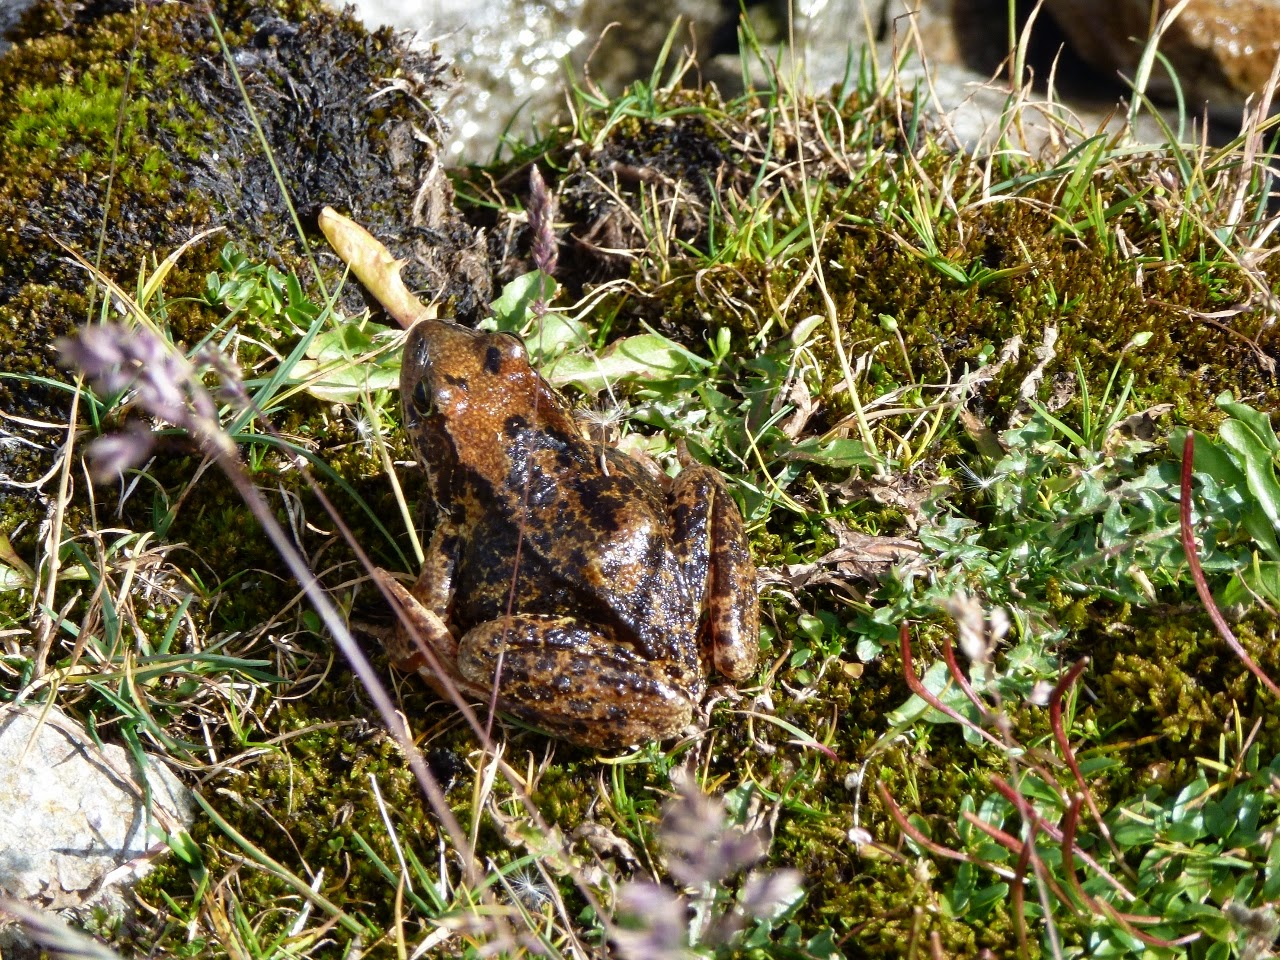 A frog found at 2,400 metres